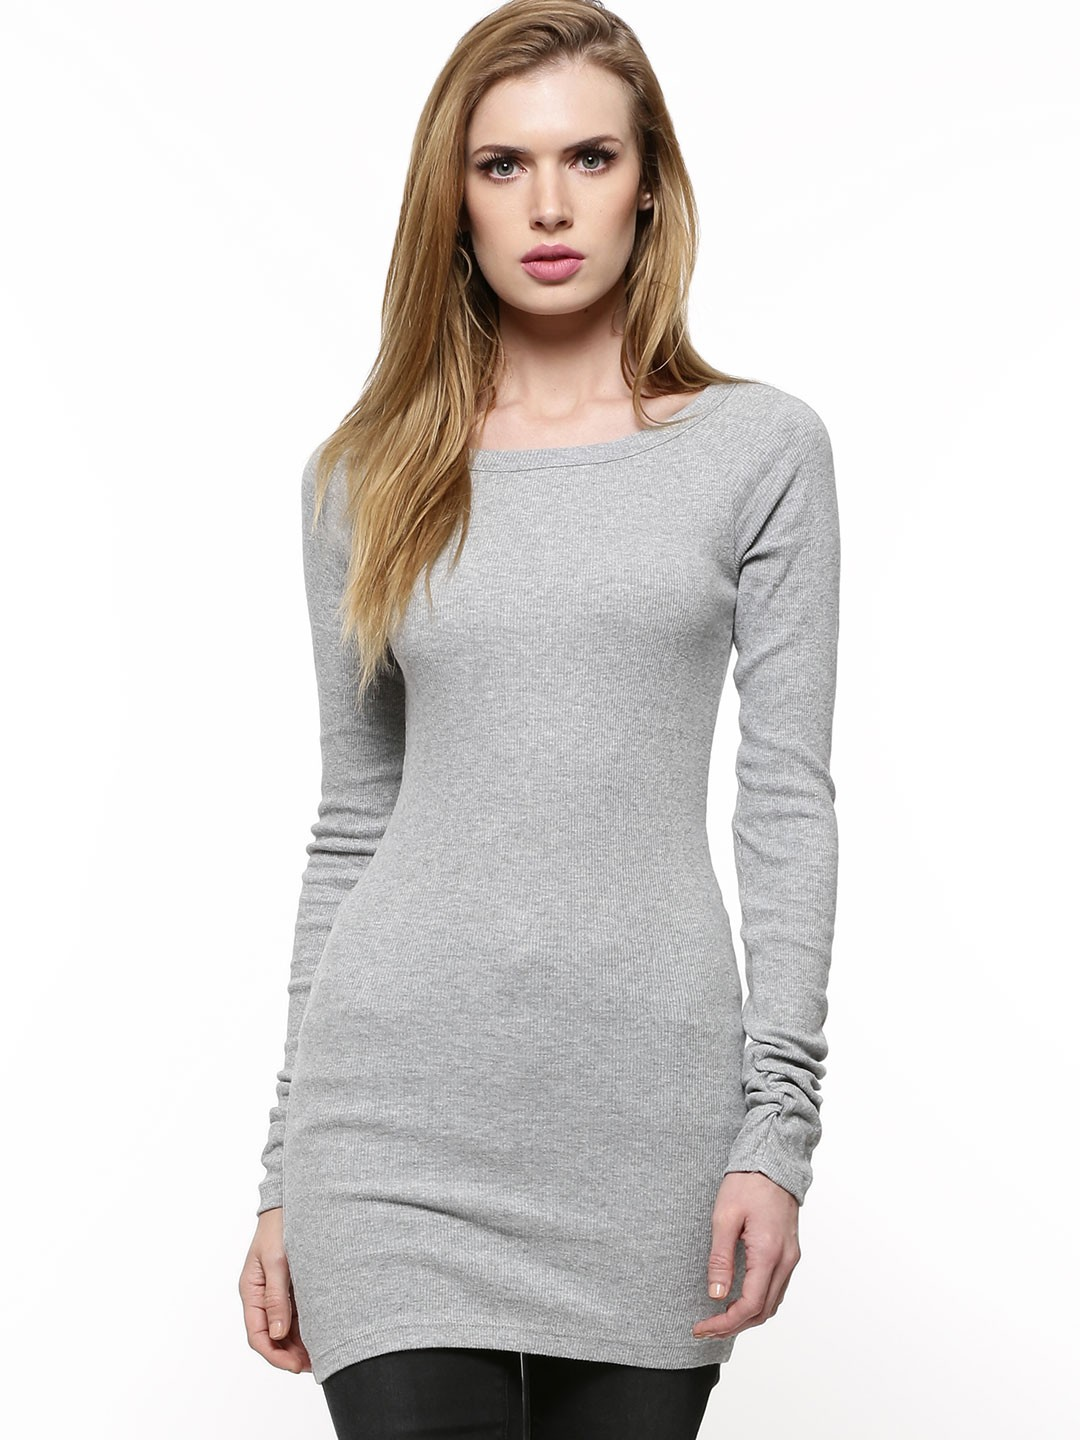 Find great deals on eBay for long sleeve tunic top. Shop with confidence.